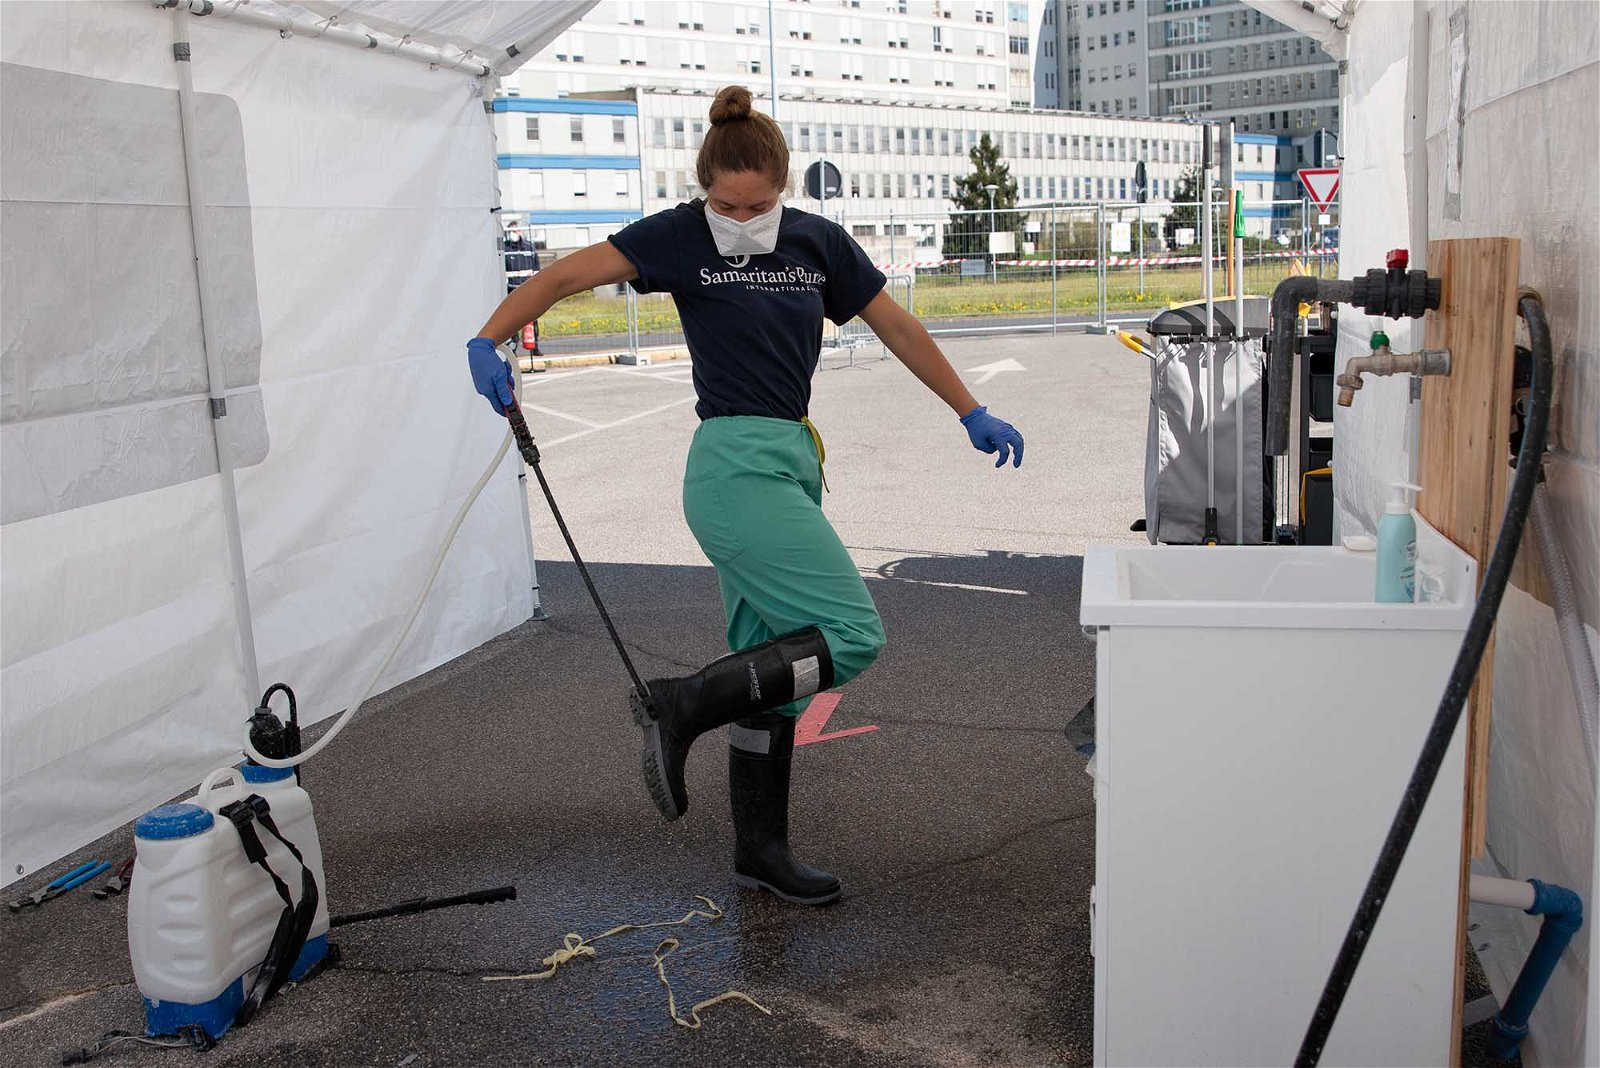 Erin, a nurse, decontaminates her boots with a chlorine solution on her way out of the hot zone.